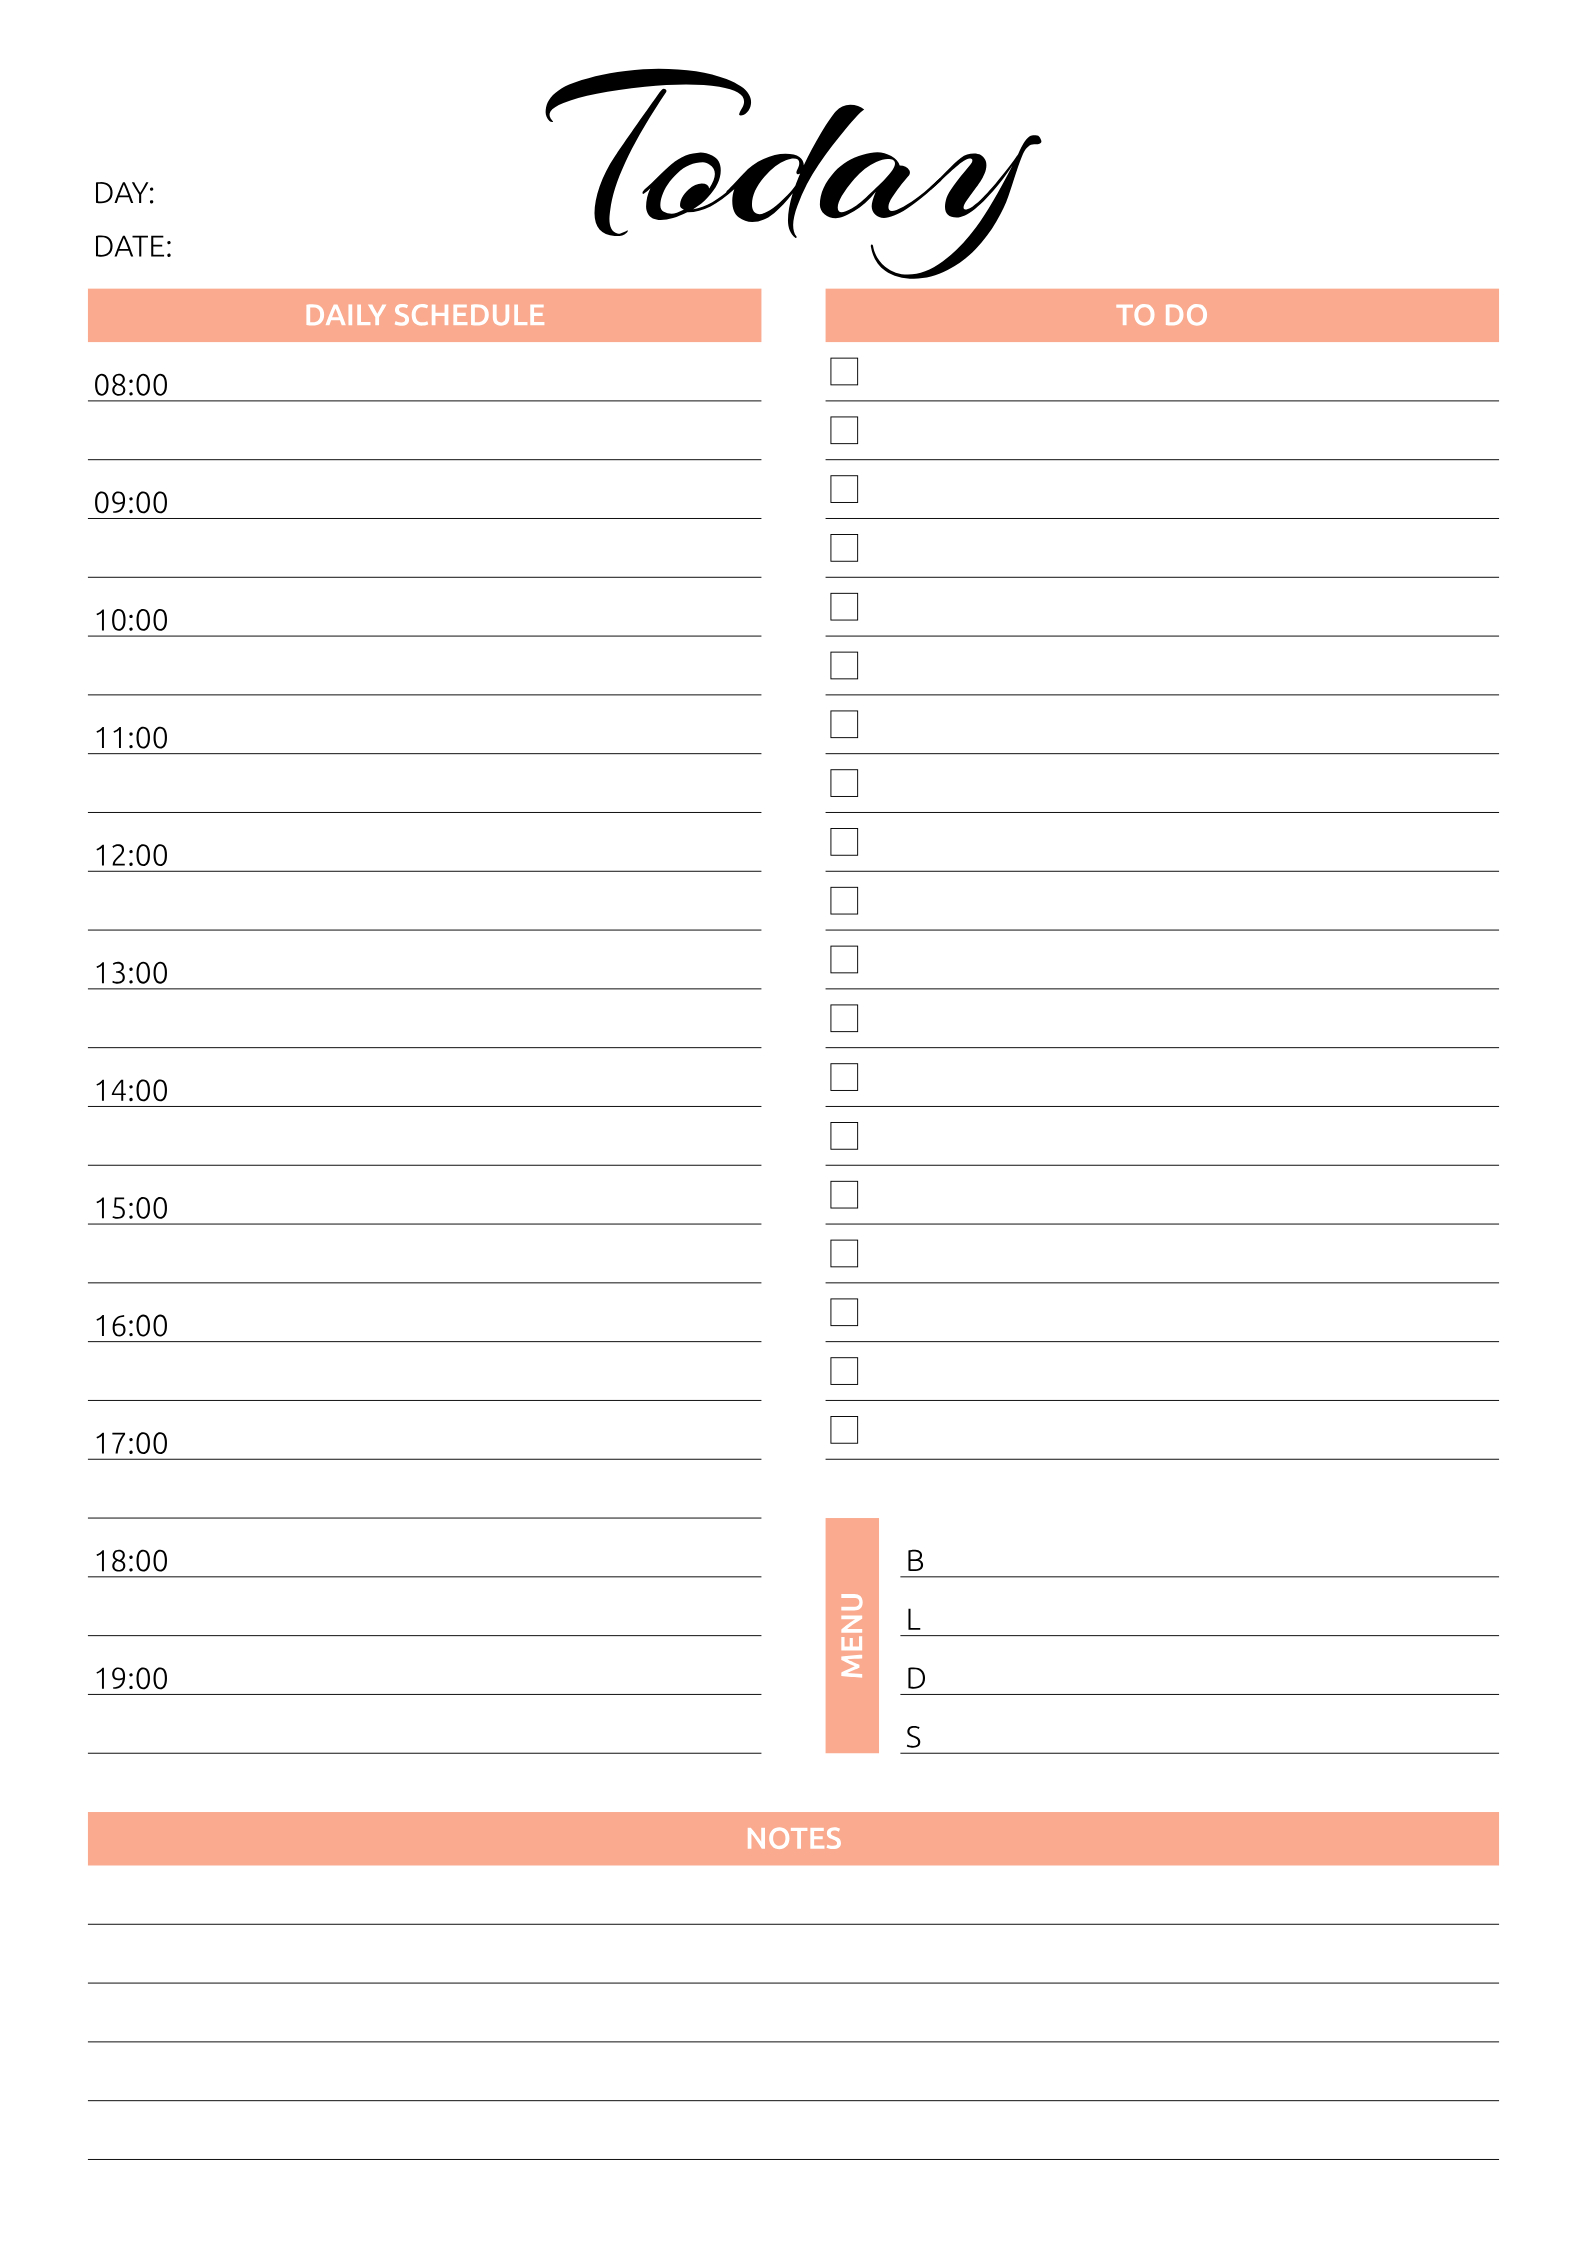 Today Hourly Planner | Daily Planner Template, Hourly Printable Daily Schedule By Hour